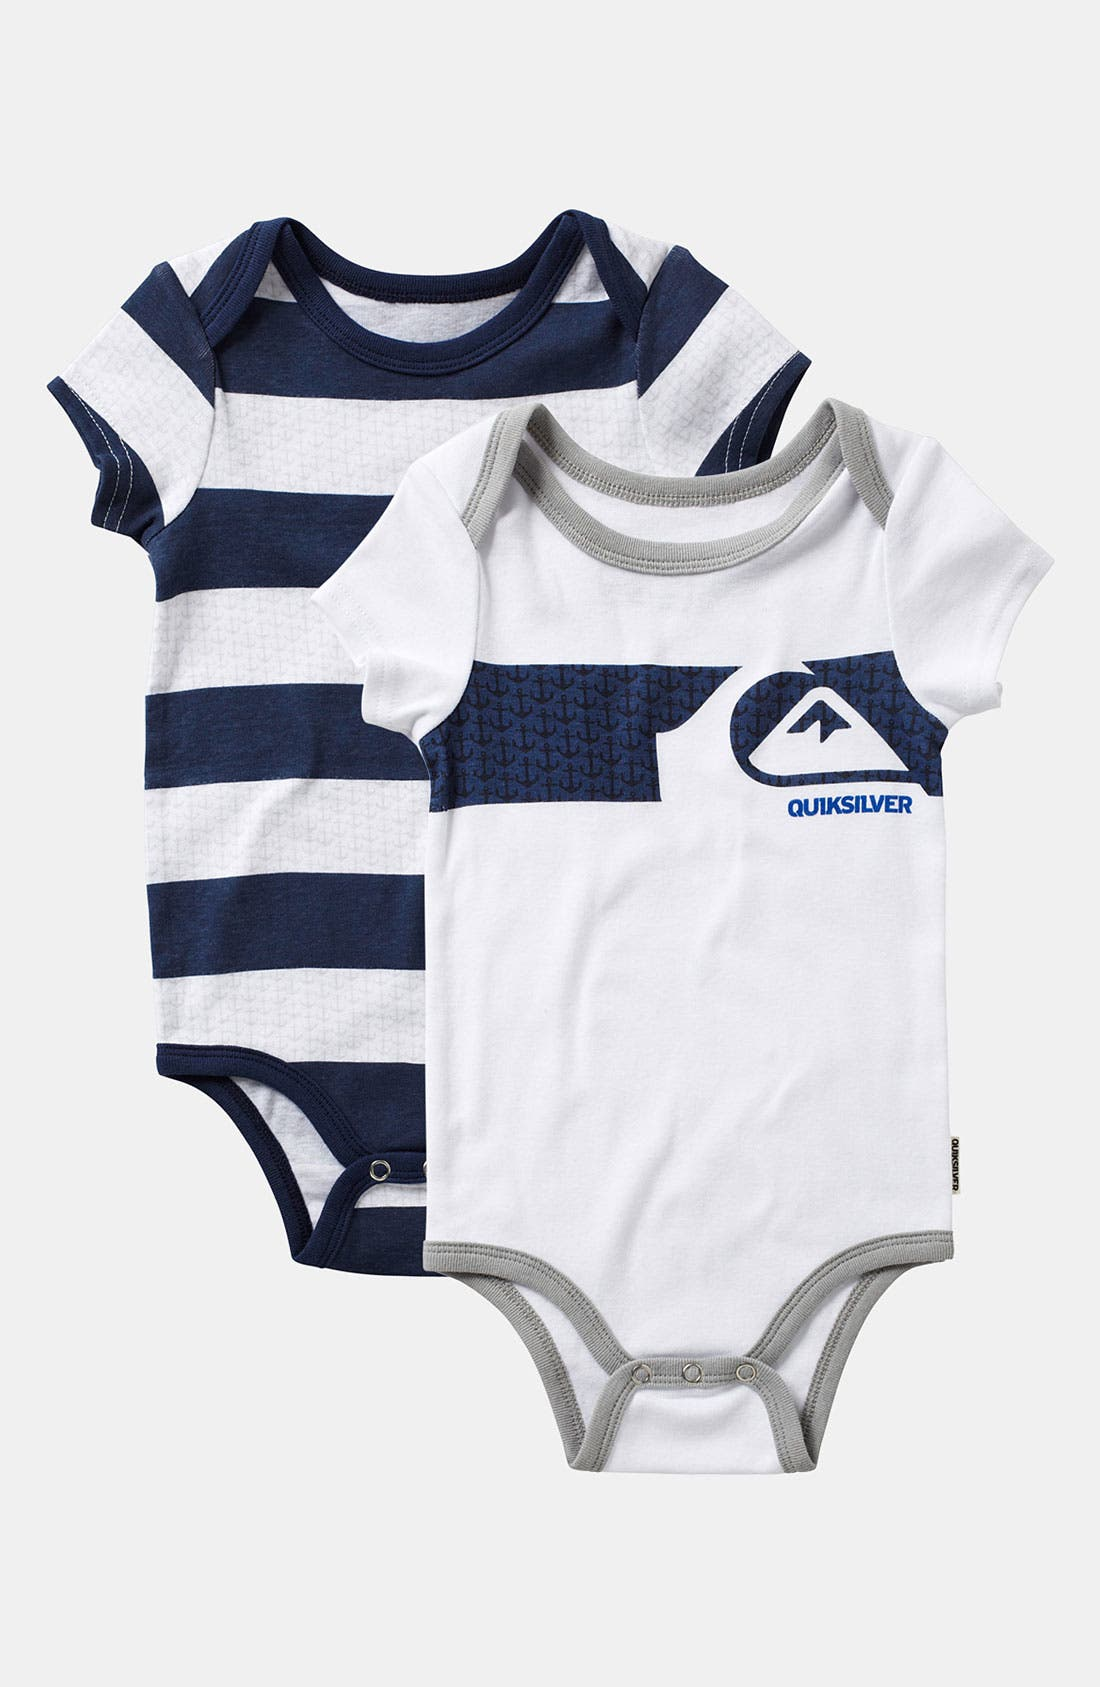 Main Image - Quiksilver Bodysuit (2-Pack) (Infant)